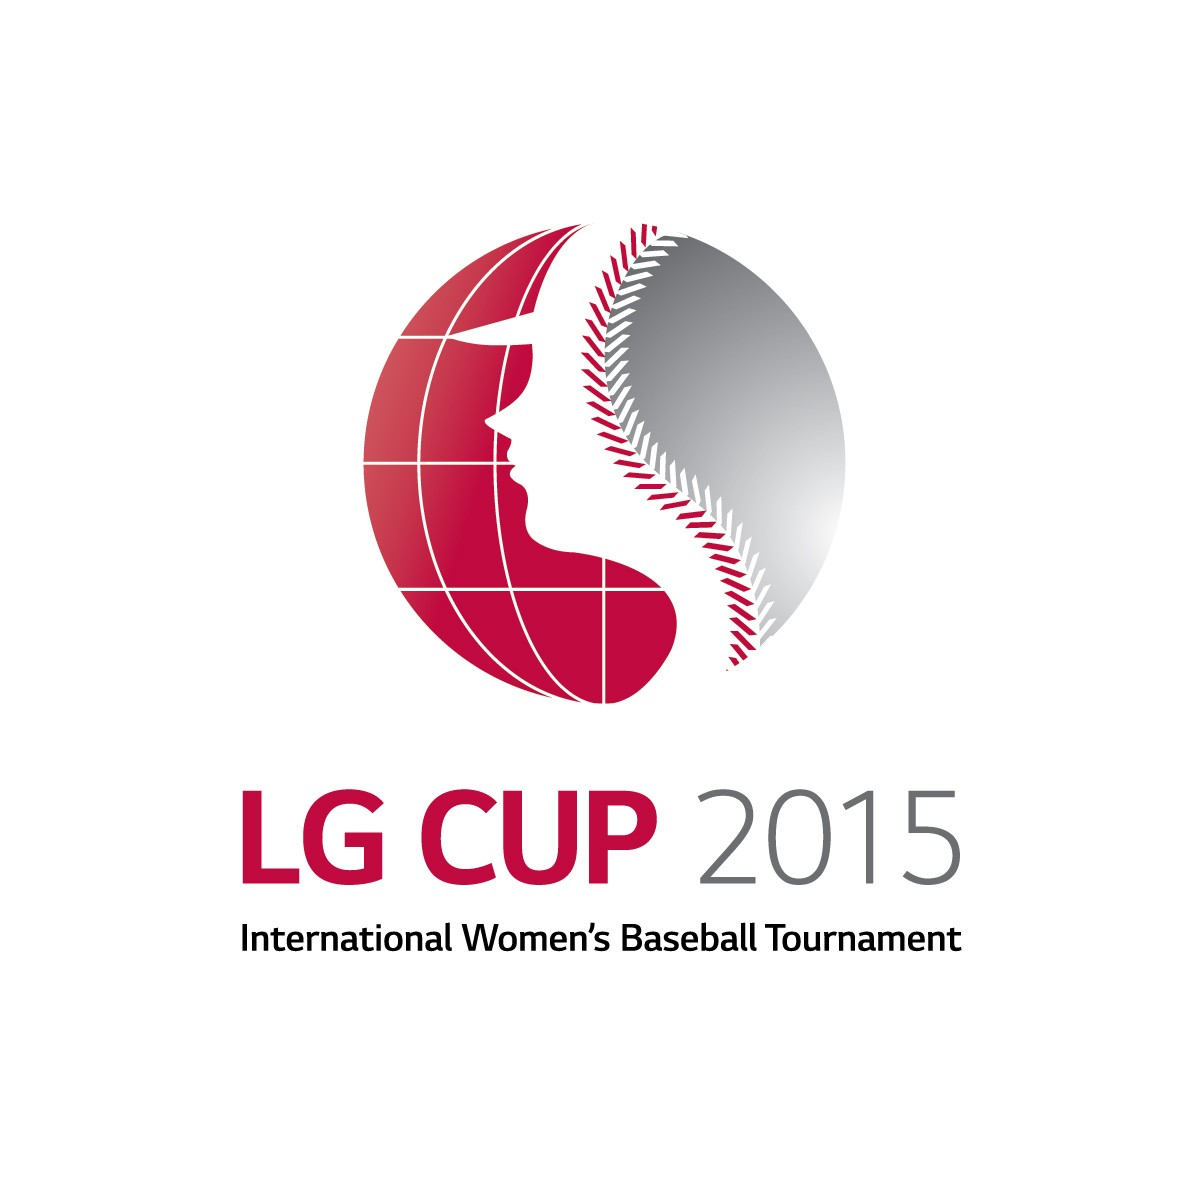 Logo of LG Cup International Women's Baseball Tournament in 2015.